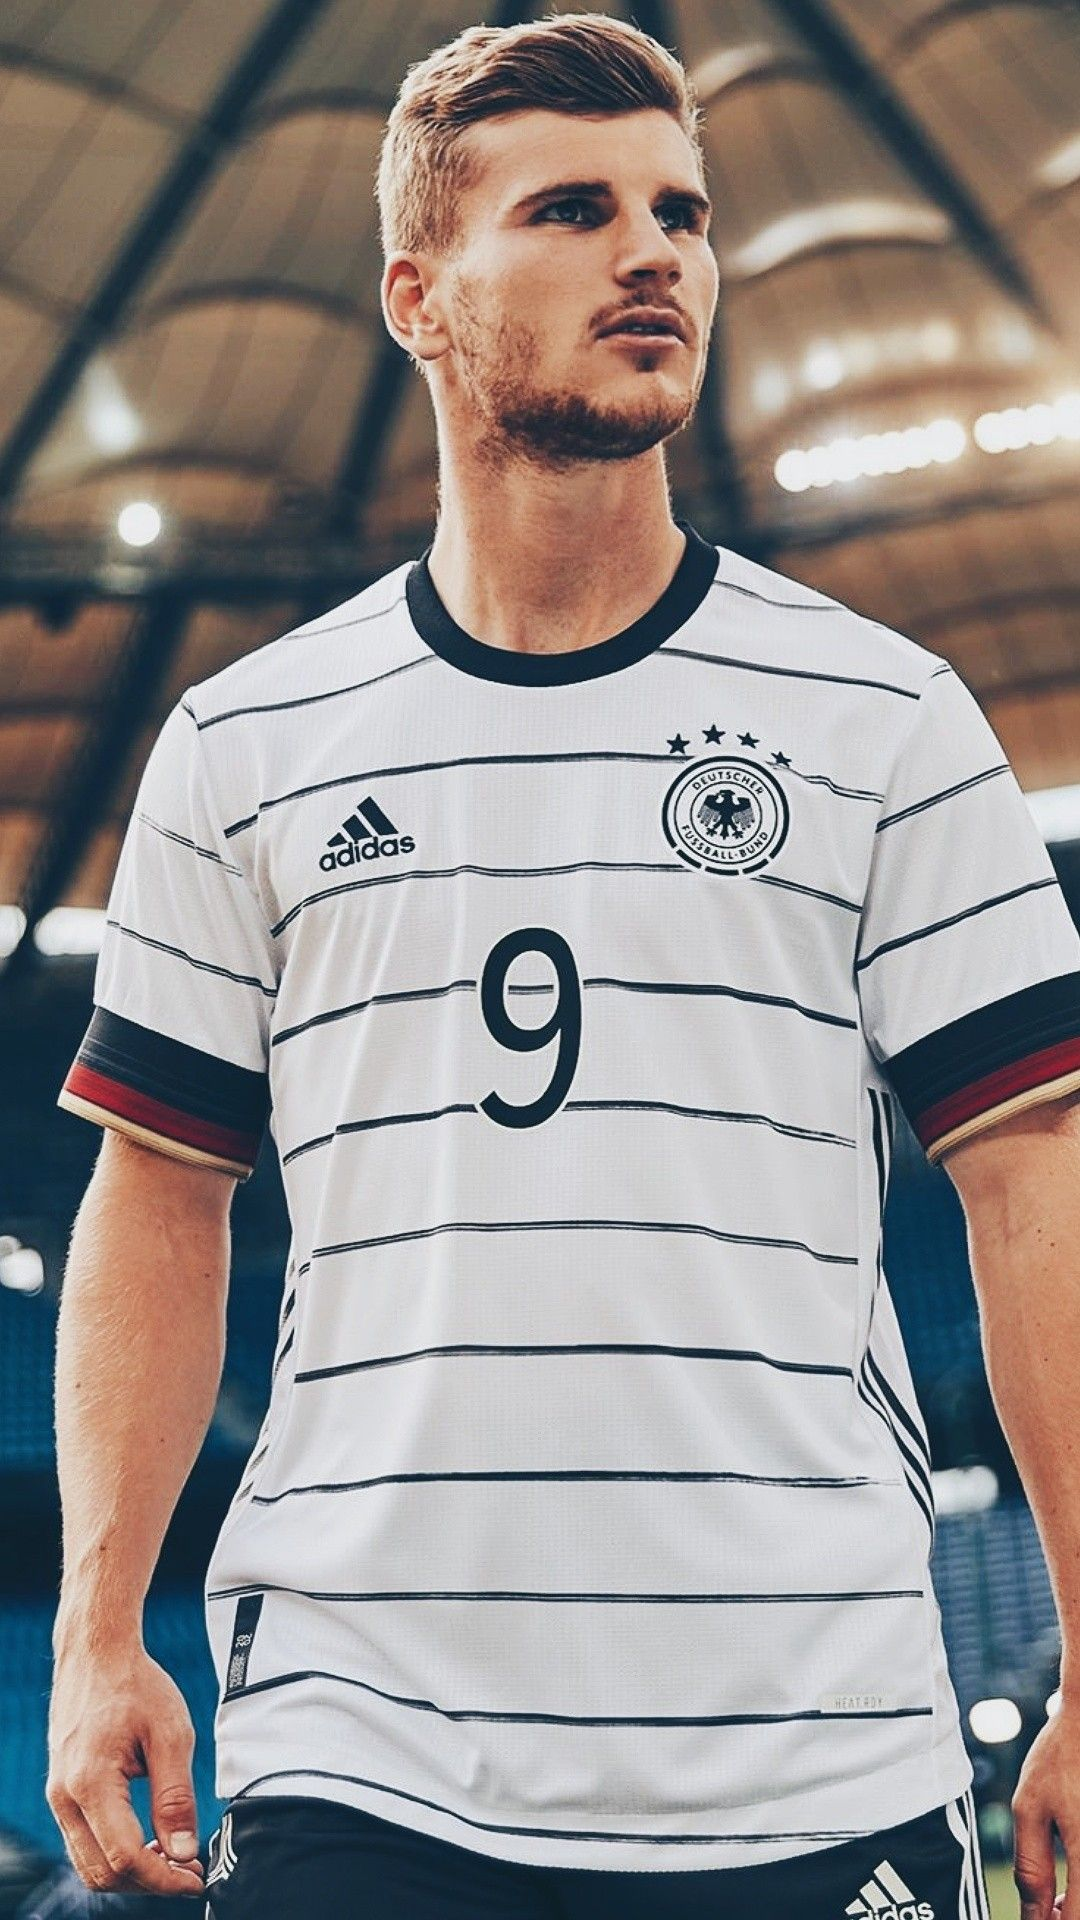 Timo Werner National Football Sports Images Football Players